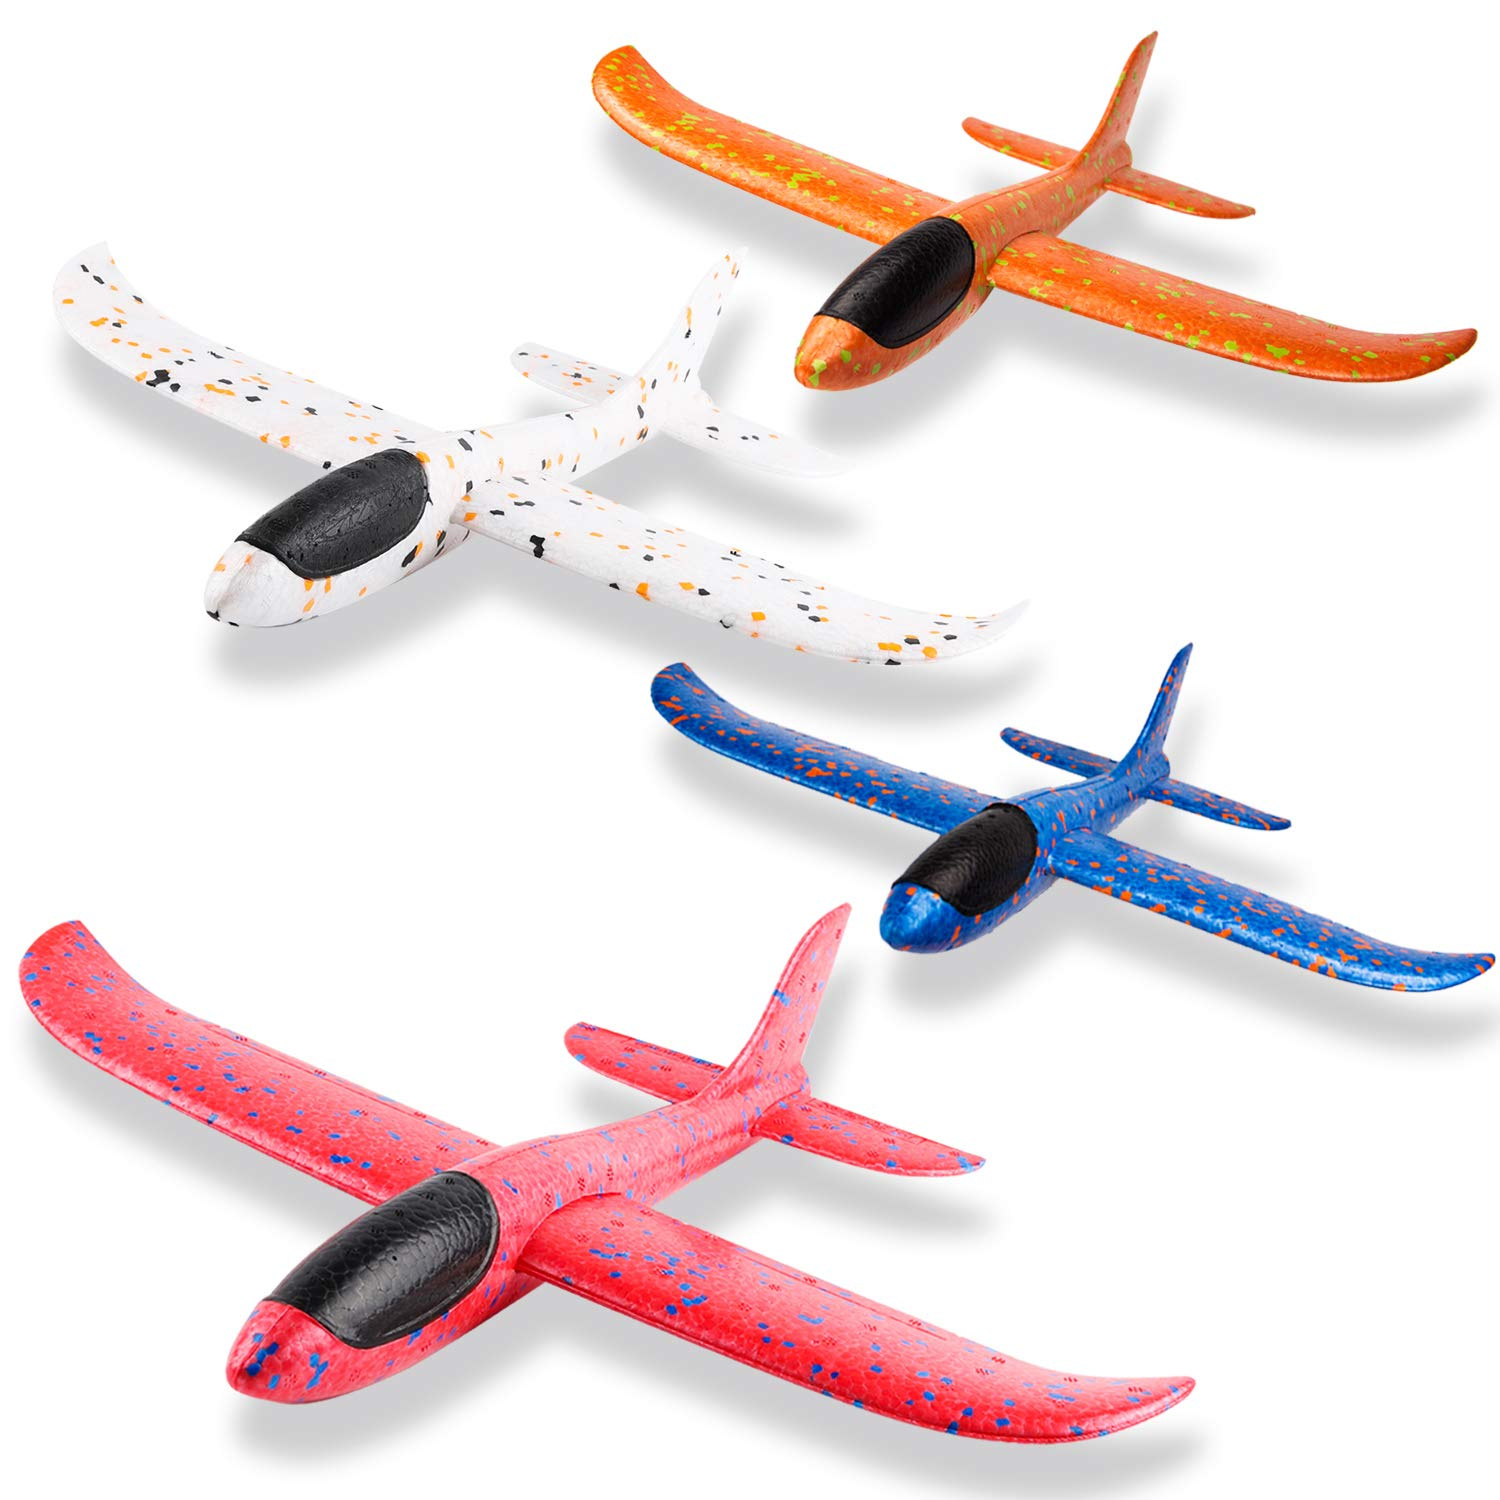 WATINC 4Pcs 14.5inch Airplanes, Manual Throwing Outdoor Sports Toys for Challenging, Children Games Toy Gliders Fun, Glider Plane for Kids, Birthday Gift Flying Gliders, Foam Airplane for Boys & Girls by WATINC